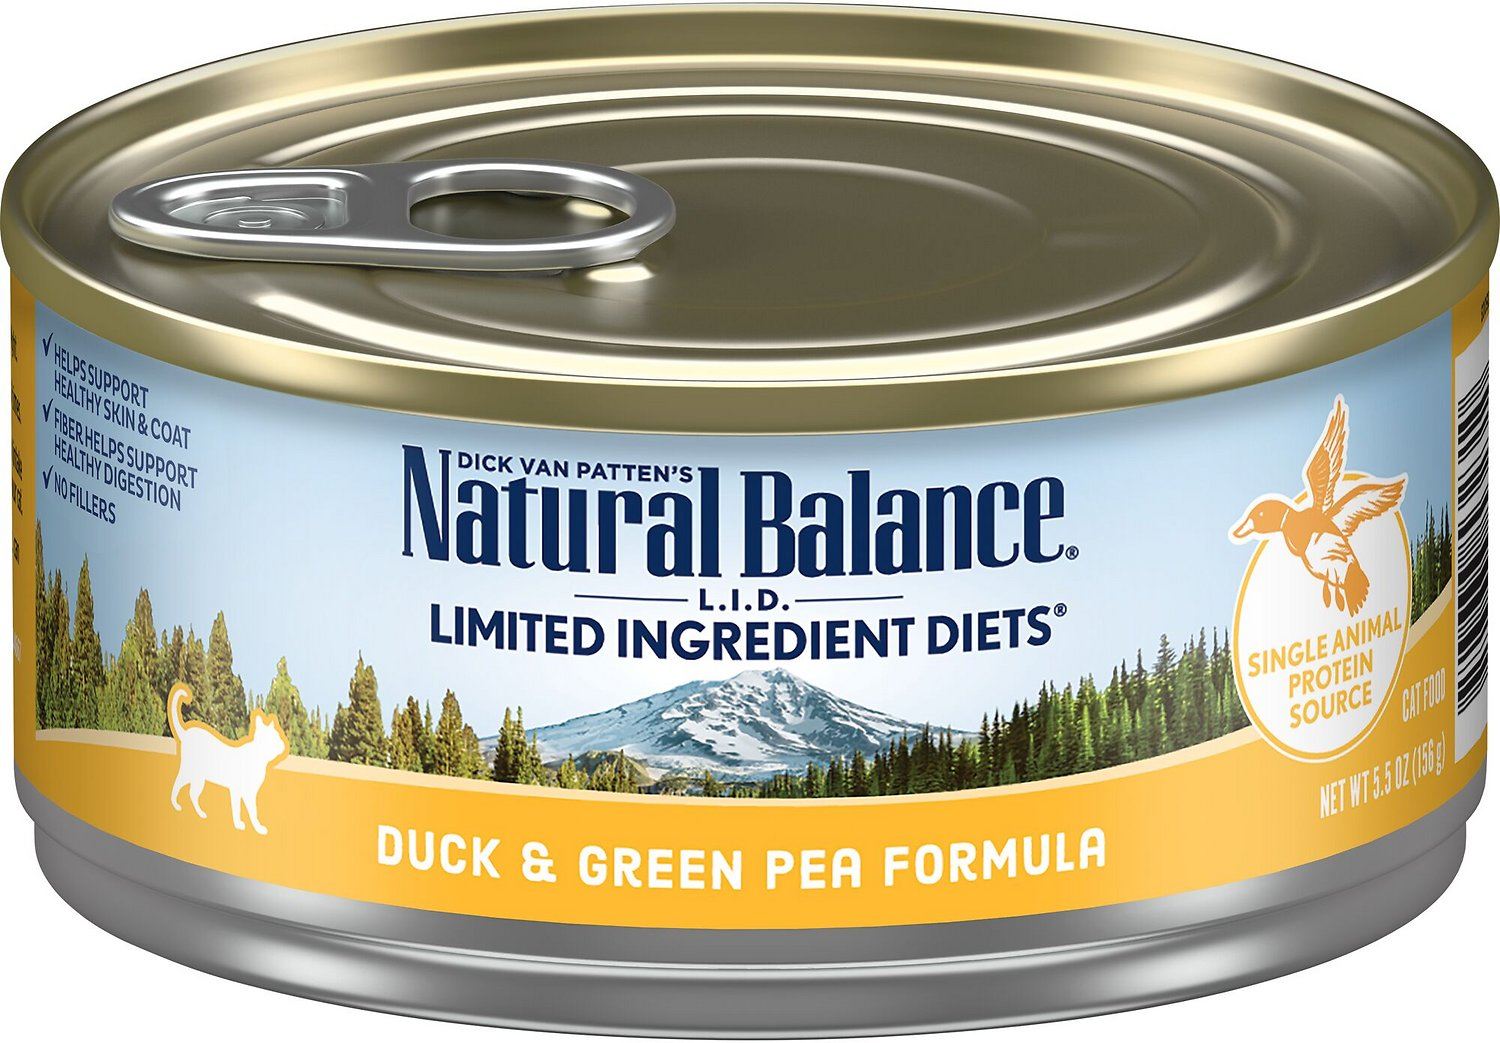 Natural Balance Duck And Green Pea Cat Food Recall